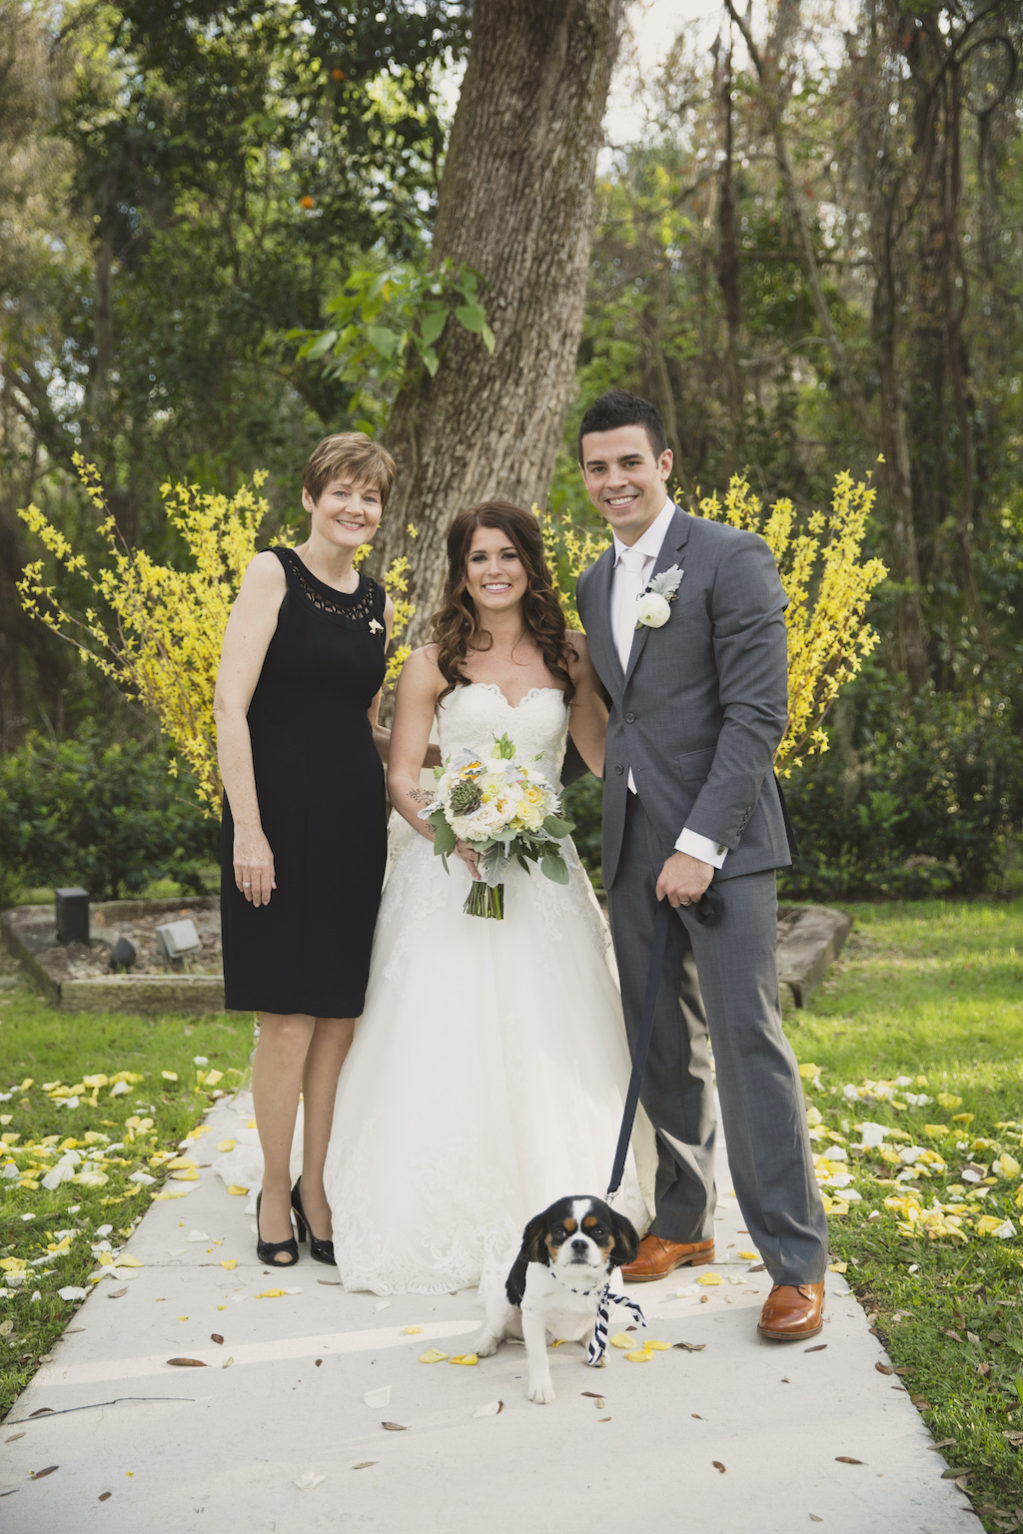 Tampa Bay, Sarasota Female Wedding Officiant Services | A Wedding with Grace